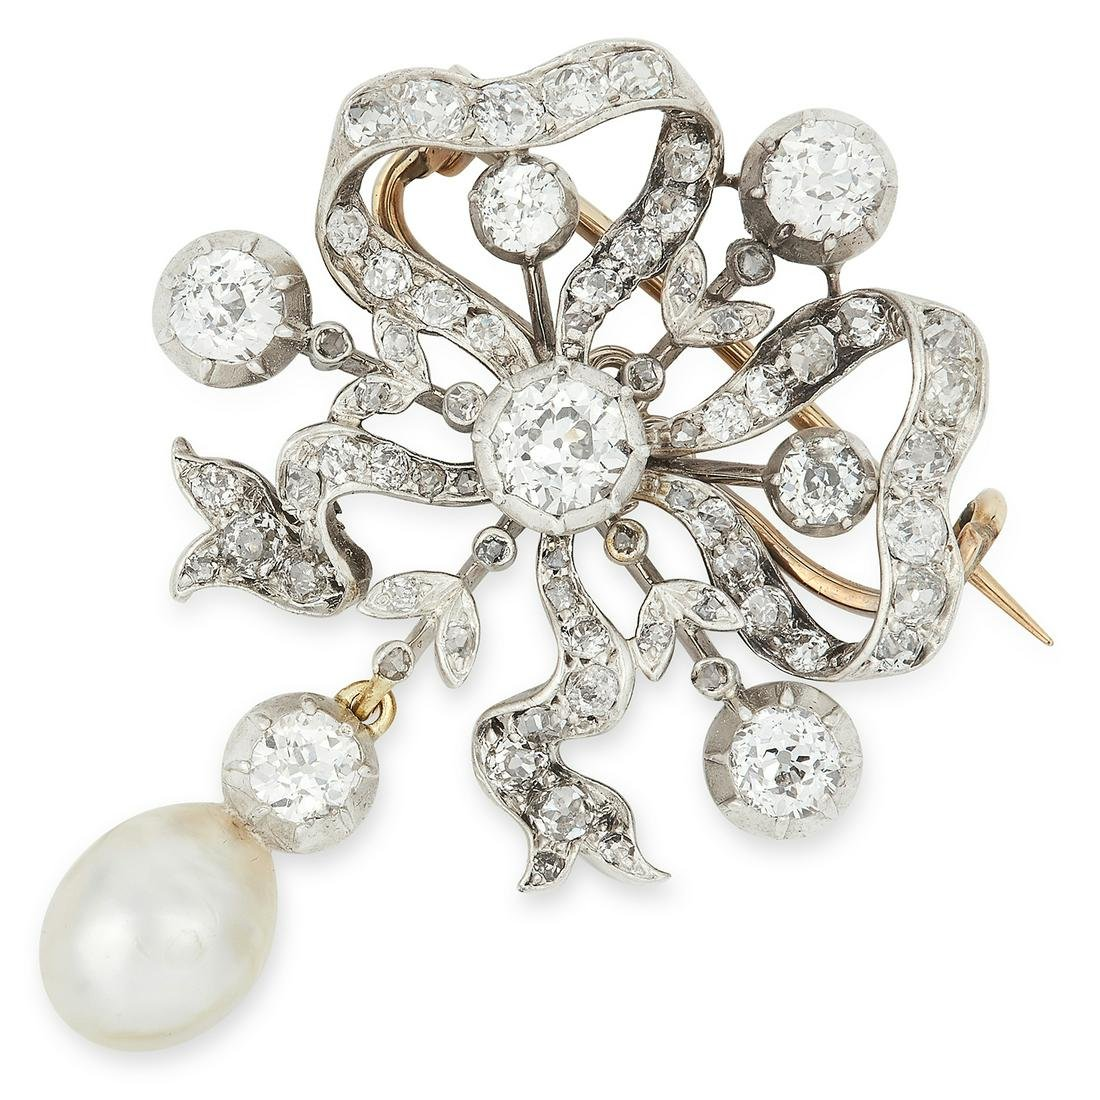 ANTIQUE NATURAL PEARL AND DIAMOND BOW BROOCH set with